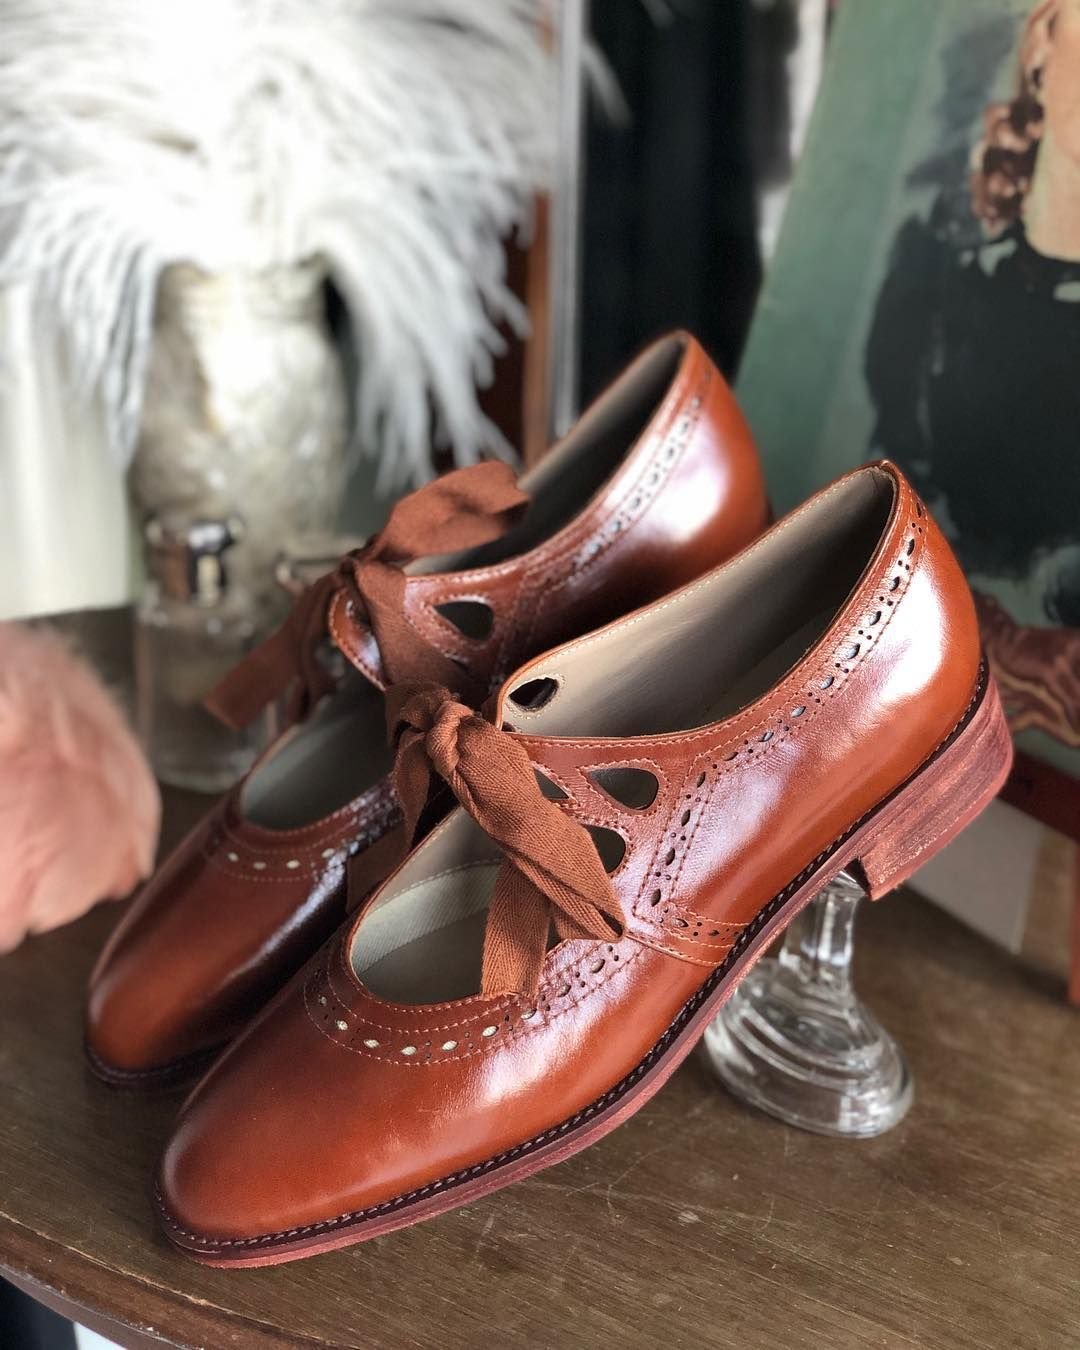 Memery Vintage Shoes On Instagram So Happy To Tell That These Cognac Brown 30s Memery Shoes Are Back En Stock In All Size Vintage Shoes Shoe Wishlist Shoes